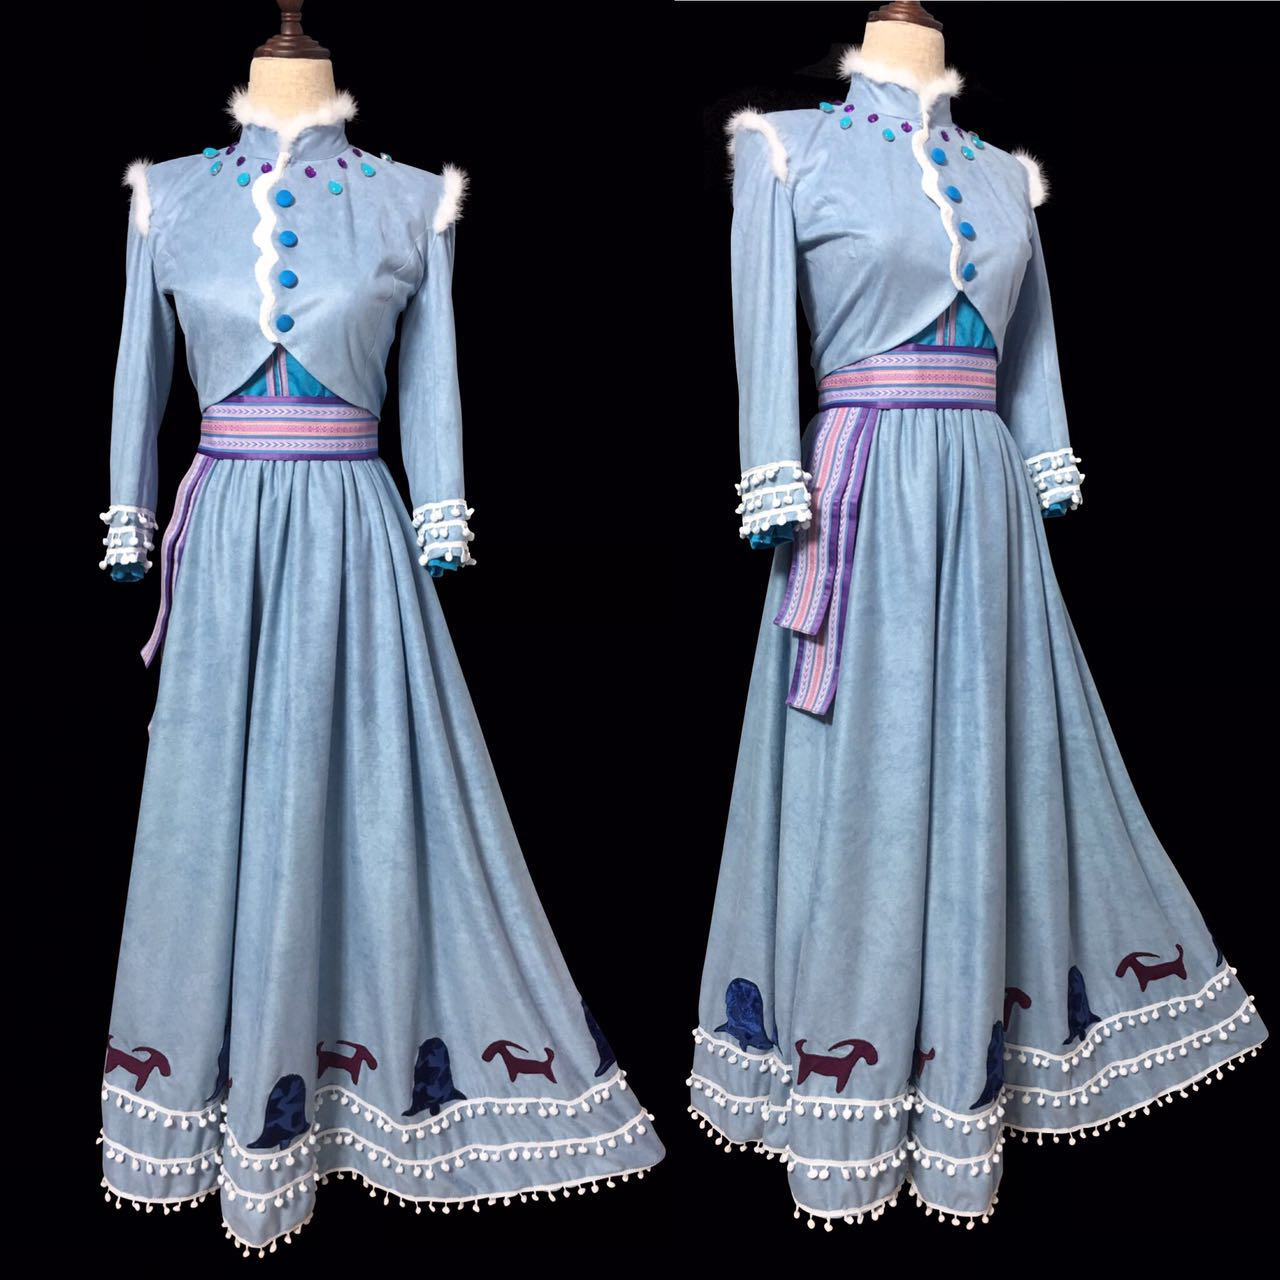 J995 olaf 39 s frozen adventure anna dress embroidery version for Embroidery office design version 9